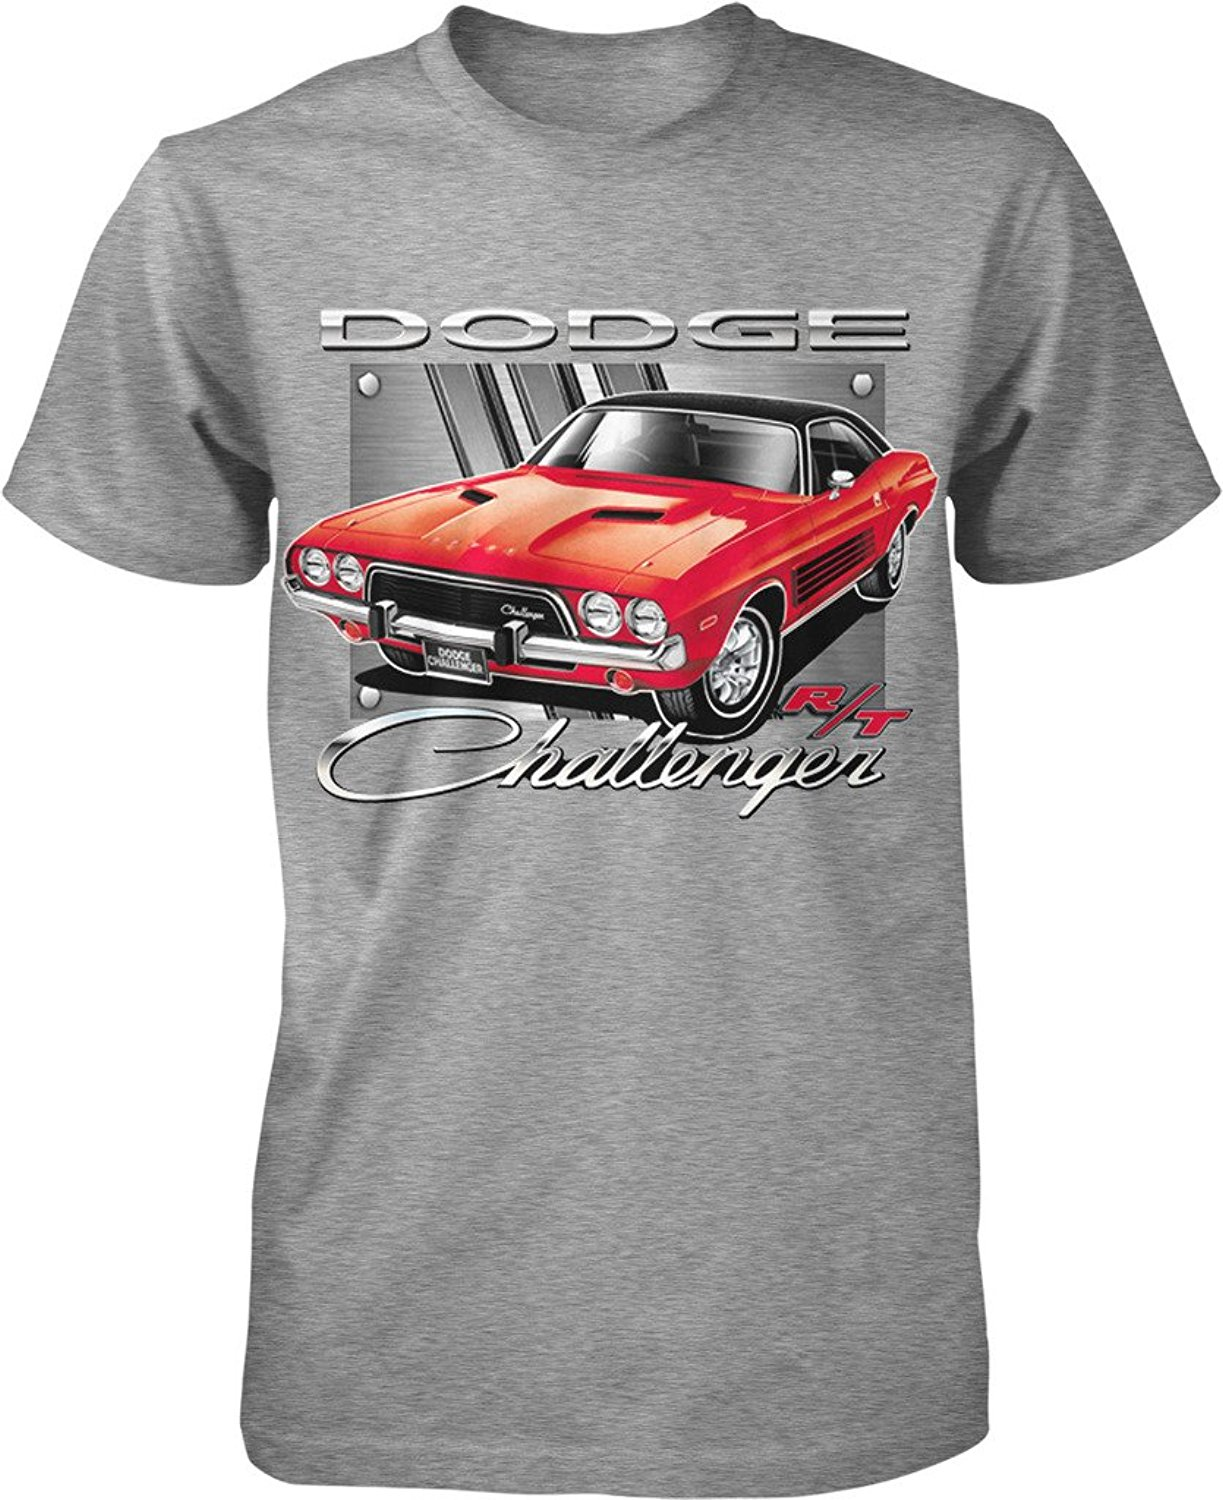 2018 Short Sleeve Cotton T Shirts Man Clothing Dodge Challenger R/T, American Muscle Men ...